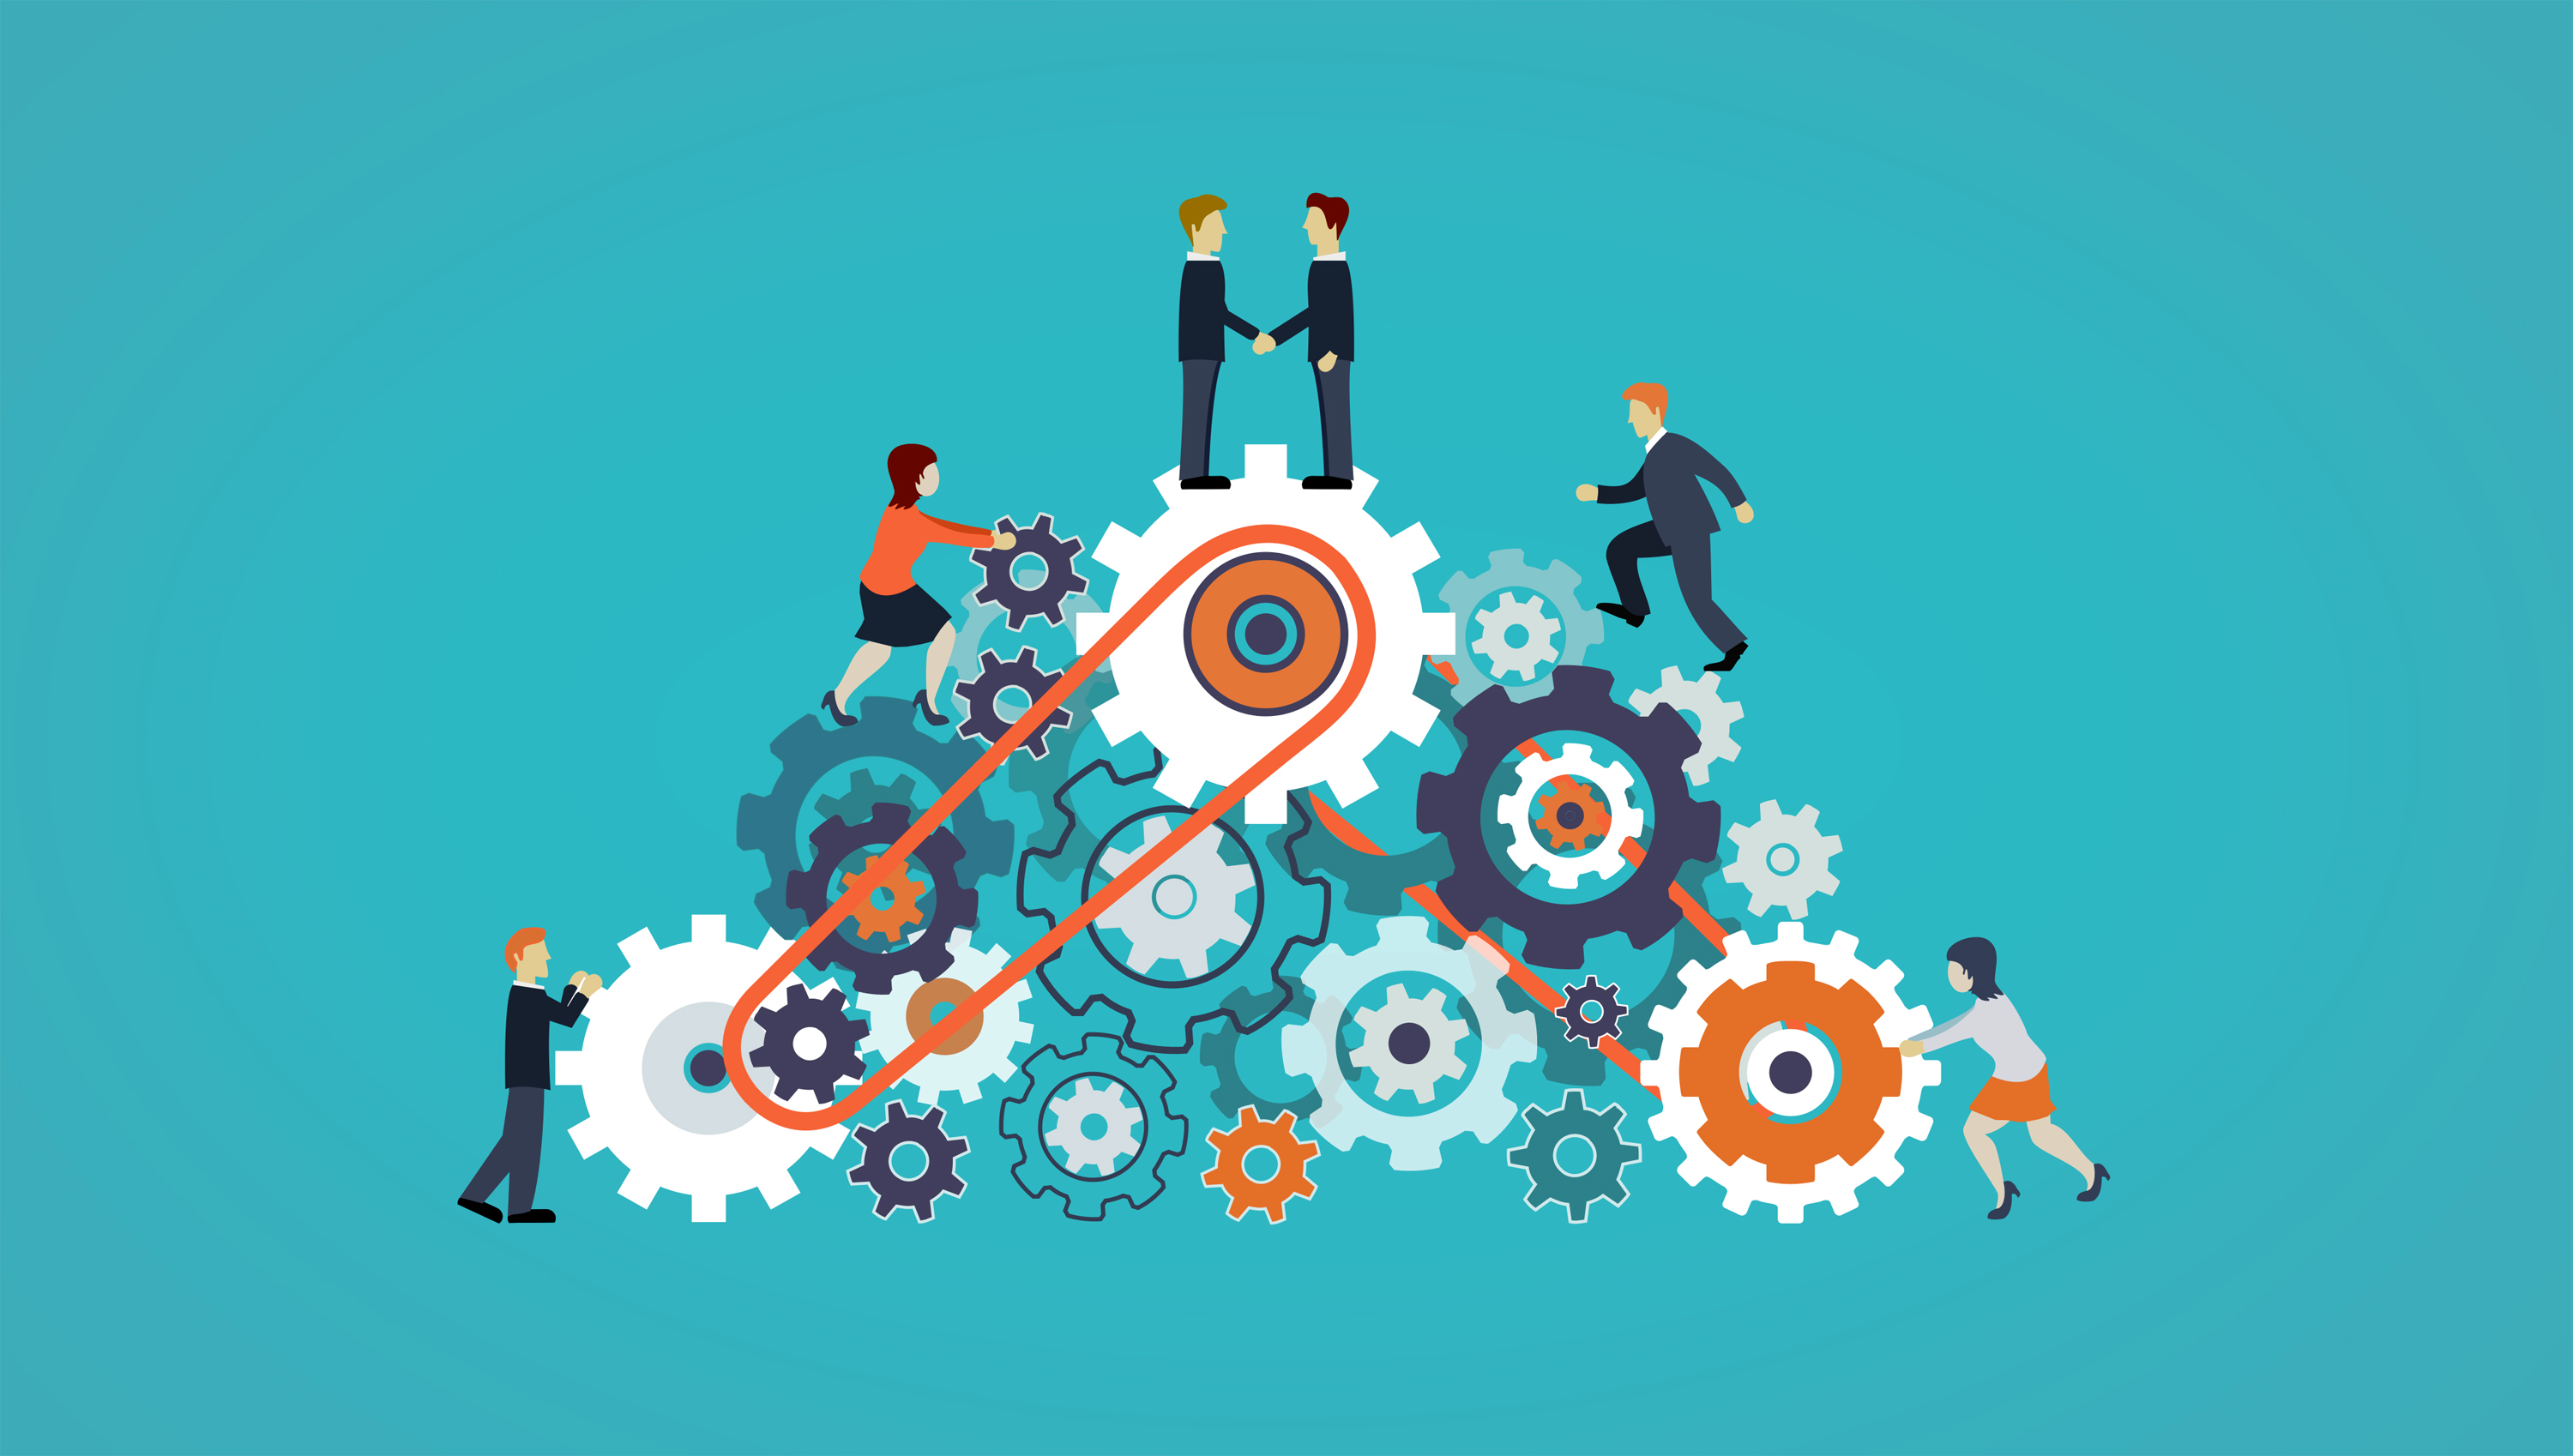 Business People on Cogwheels - Workforce and Teamwork Concept, Art, Partnership, Resource, Pyramid, HQ Photo